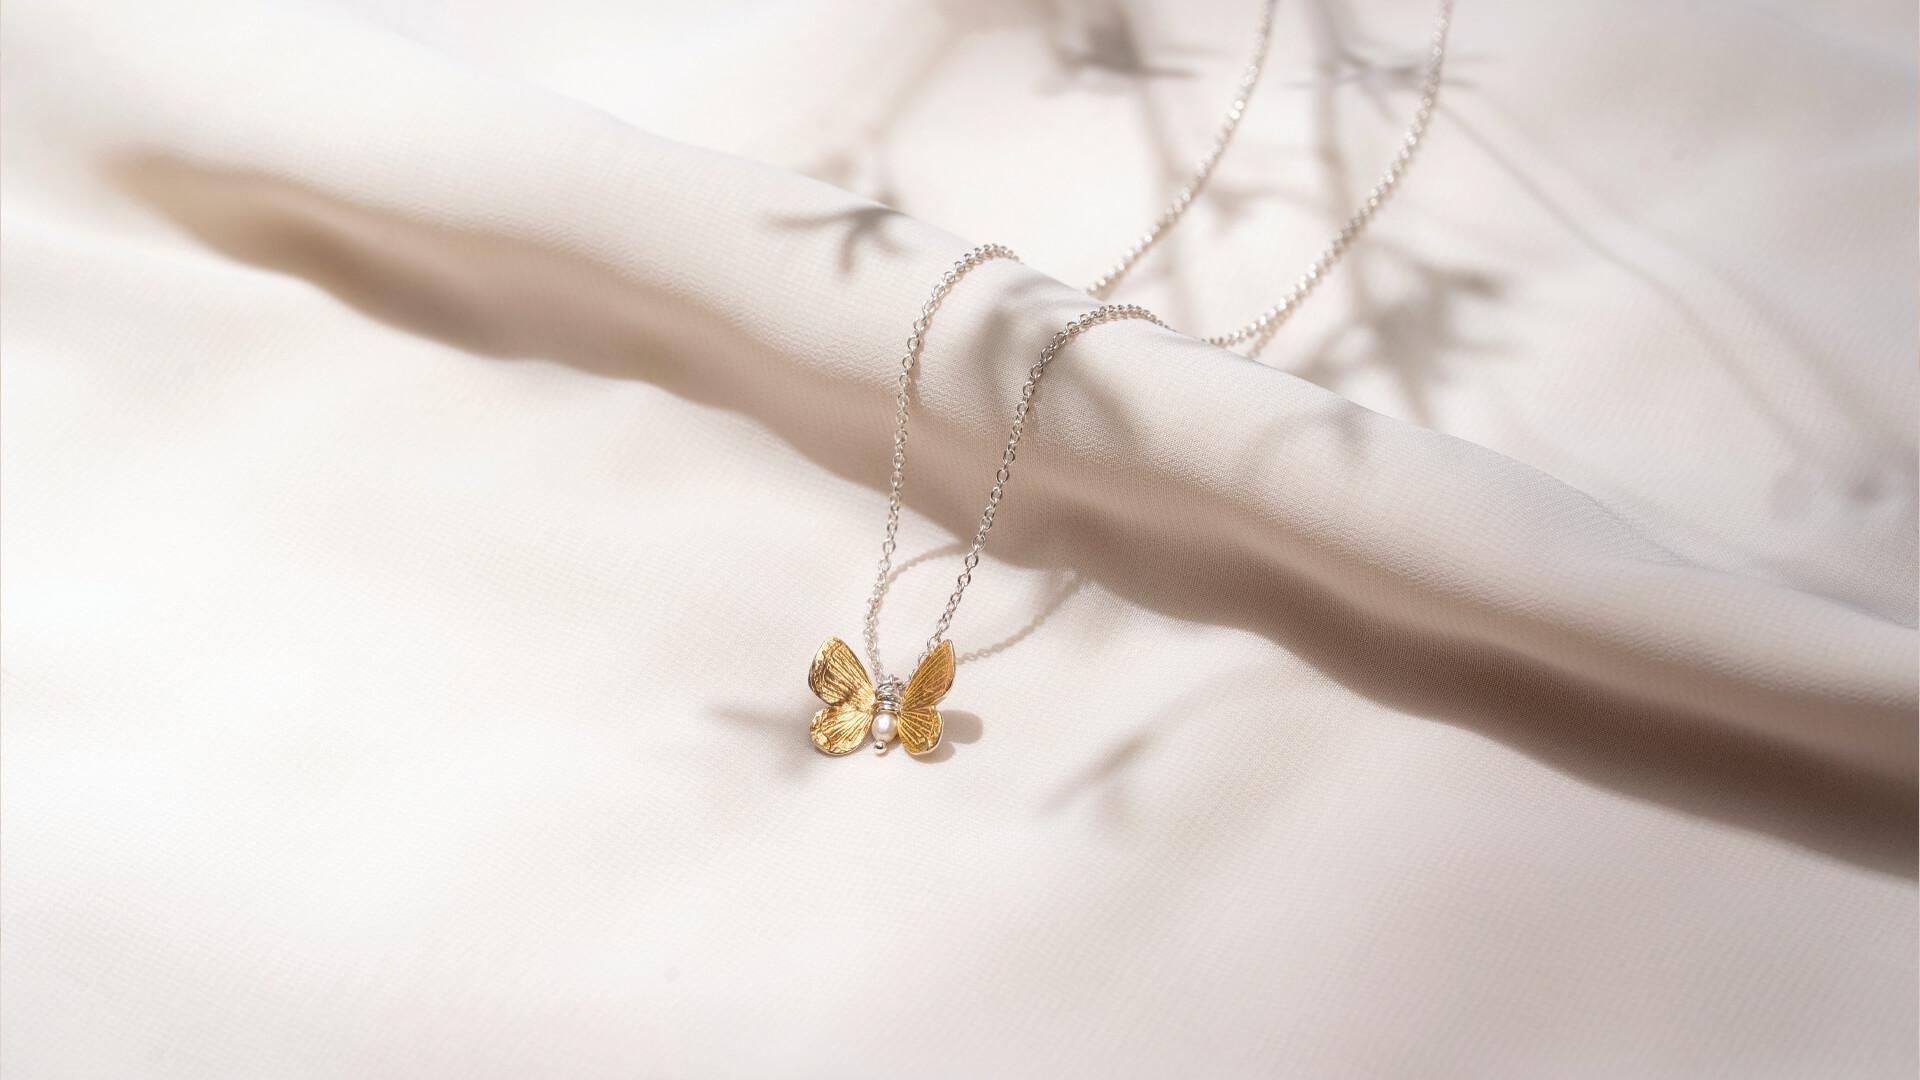 Sterling Silver and 14ct Gold Butterfly Necklace made by Lily Griffin